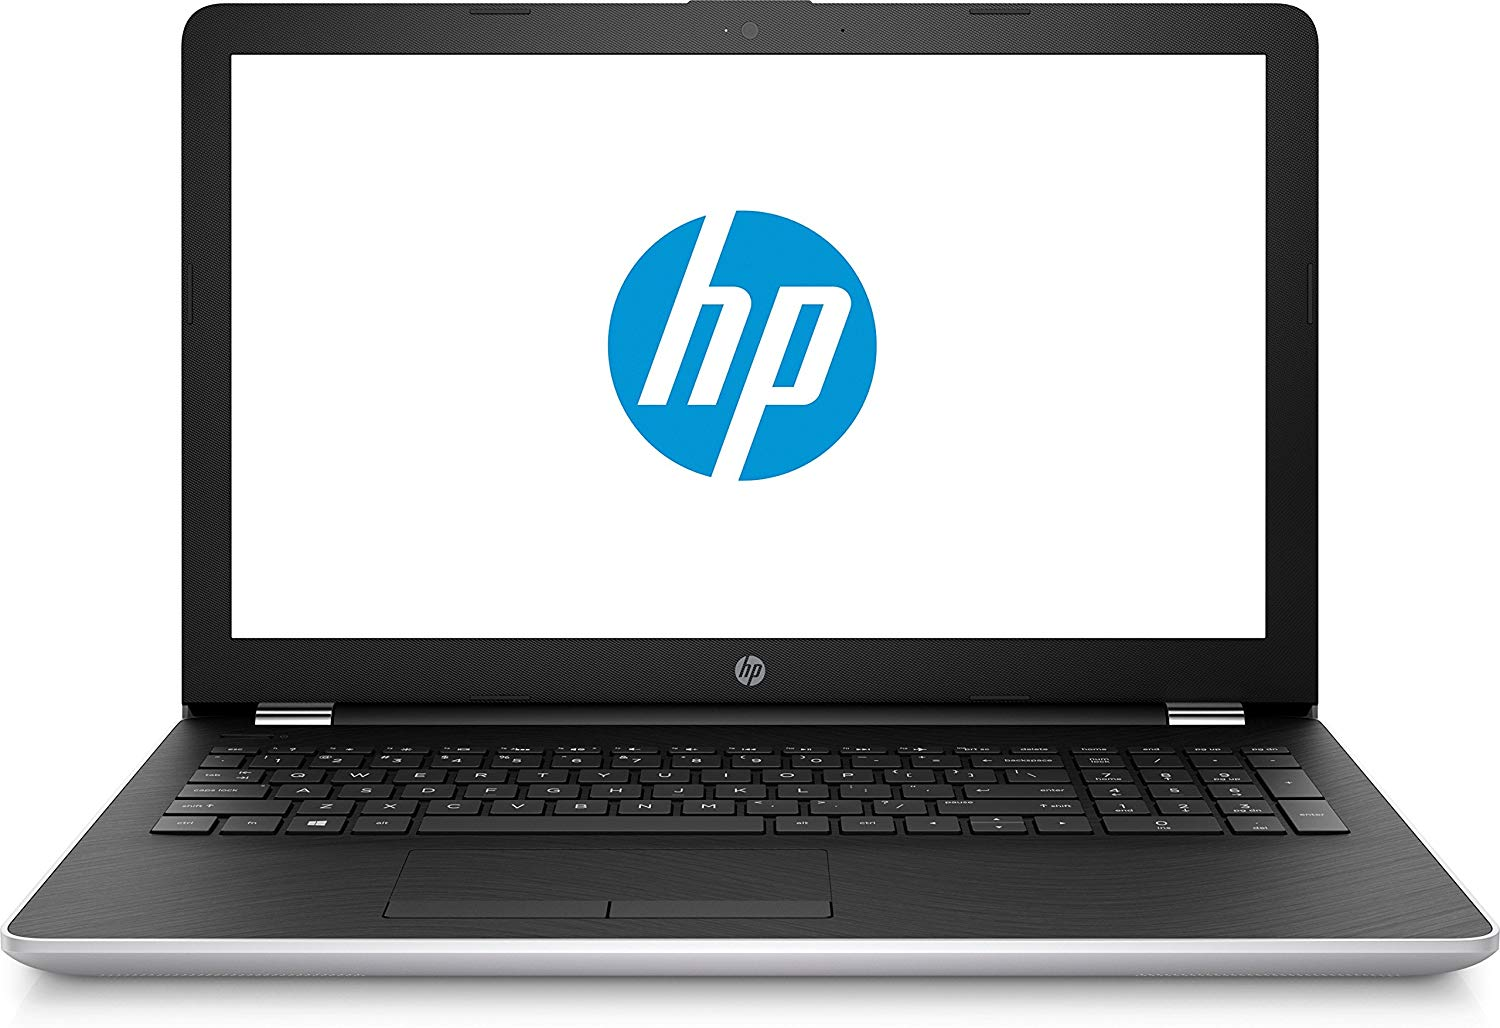 HP 15 DA0300TU 2018 15.6-inch Laptop (8th Gen i5-8250U/4GB/1TB/DOS/Integrated Graphics), Sparkling Black